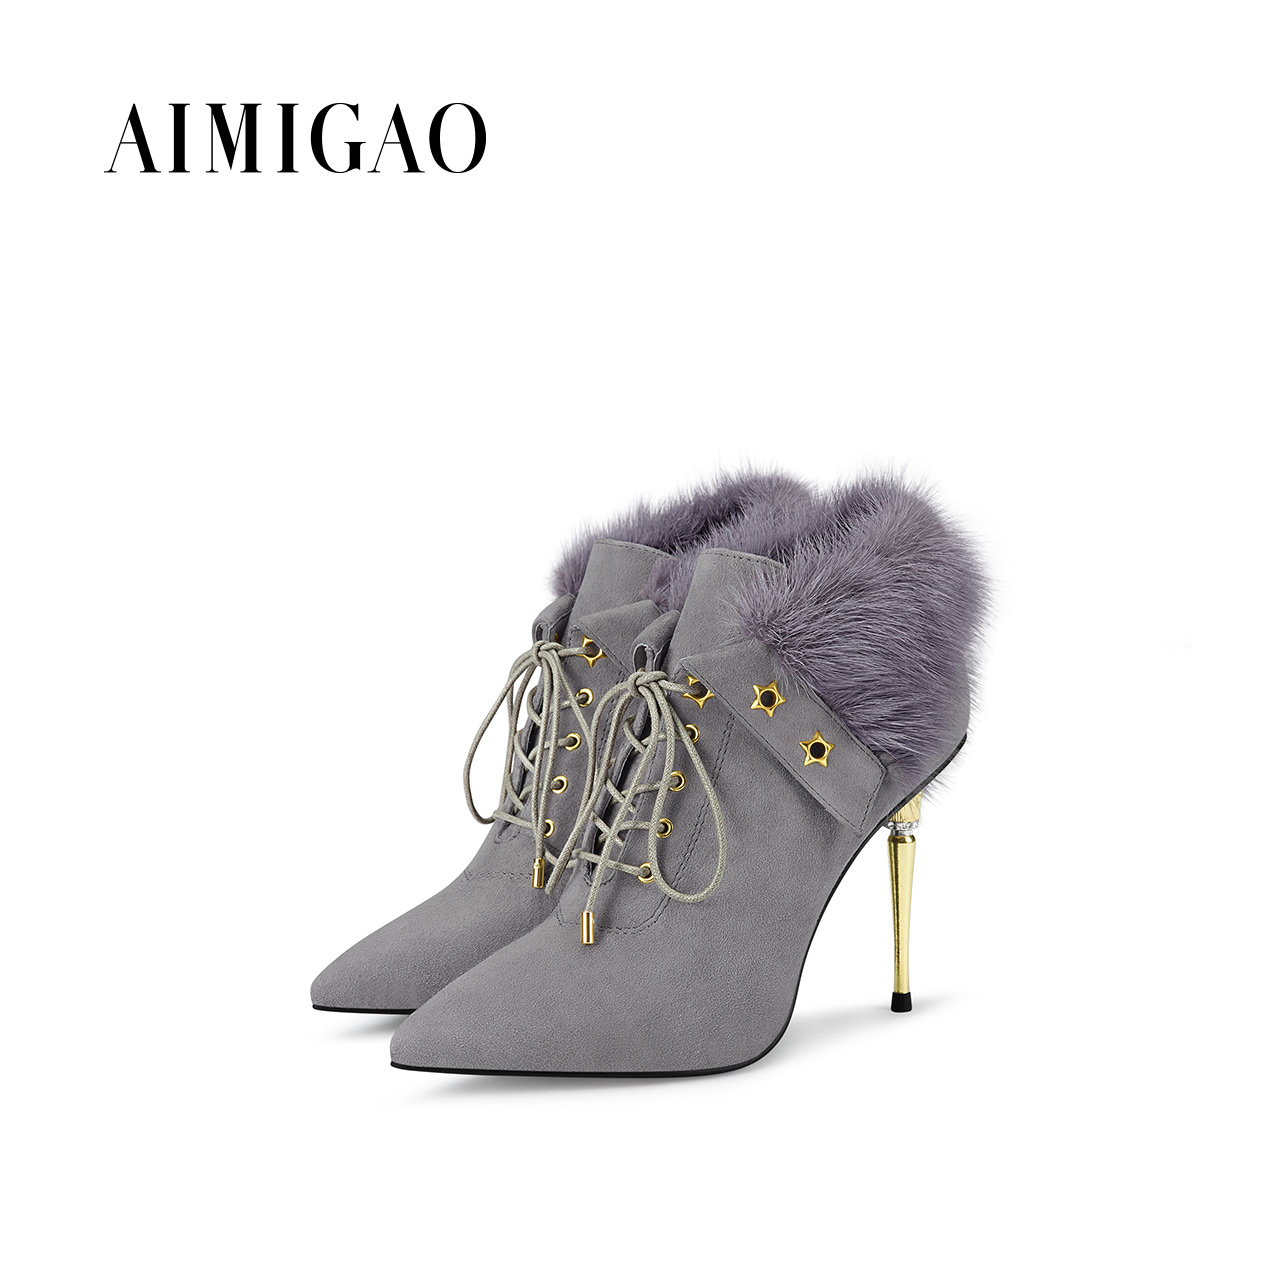 AIMIGAO 2017 winter new suede leather pointed toe high heel ankle boots luxury women's mink hair boots fashion belt buckle shoes